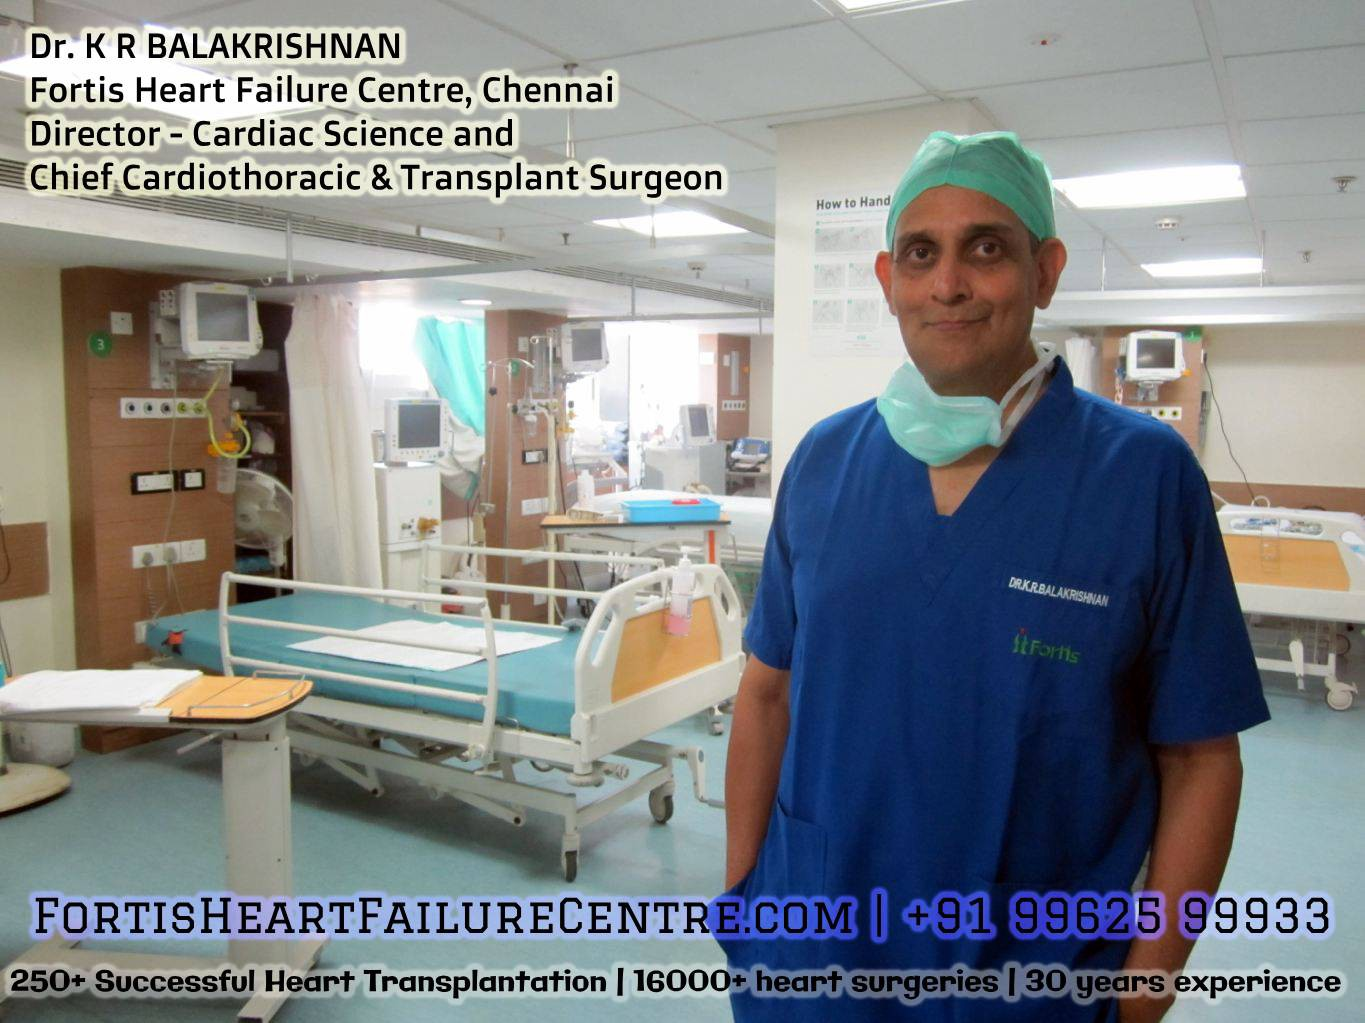 Dr K R Balakrishnan Best Heart Transplant Surgeon In India By Priya Shetty Medium